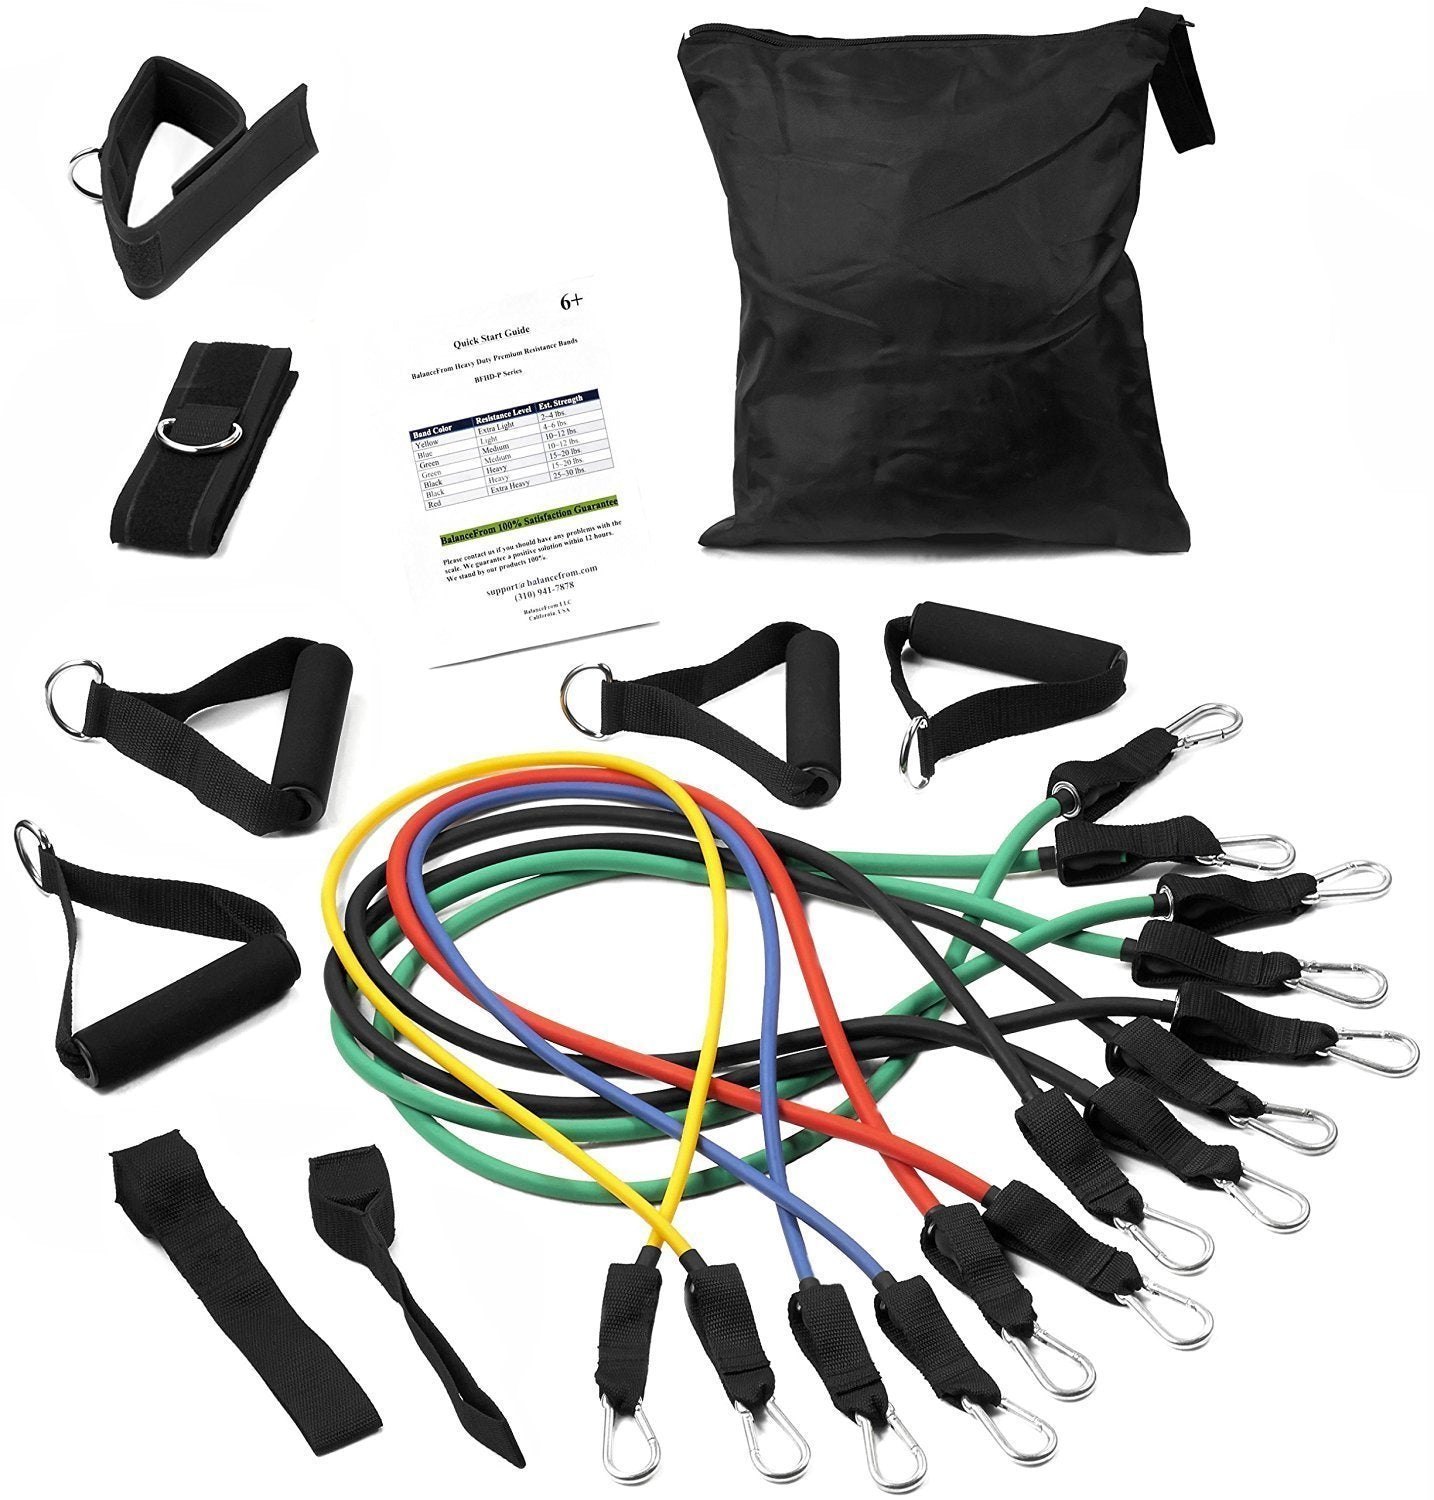 Resistance Band Set (11 Piece Set)